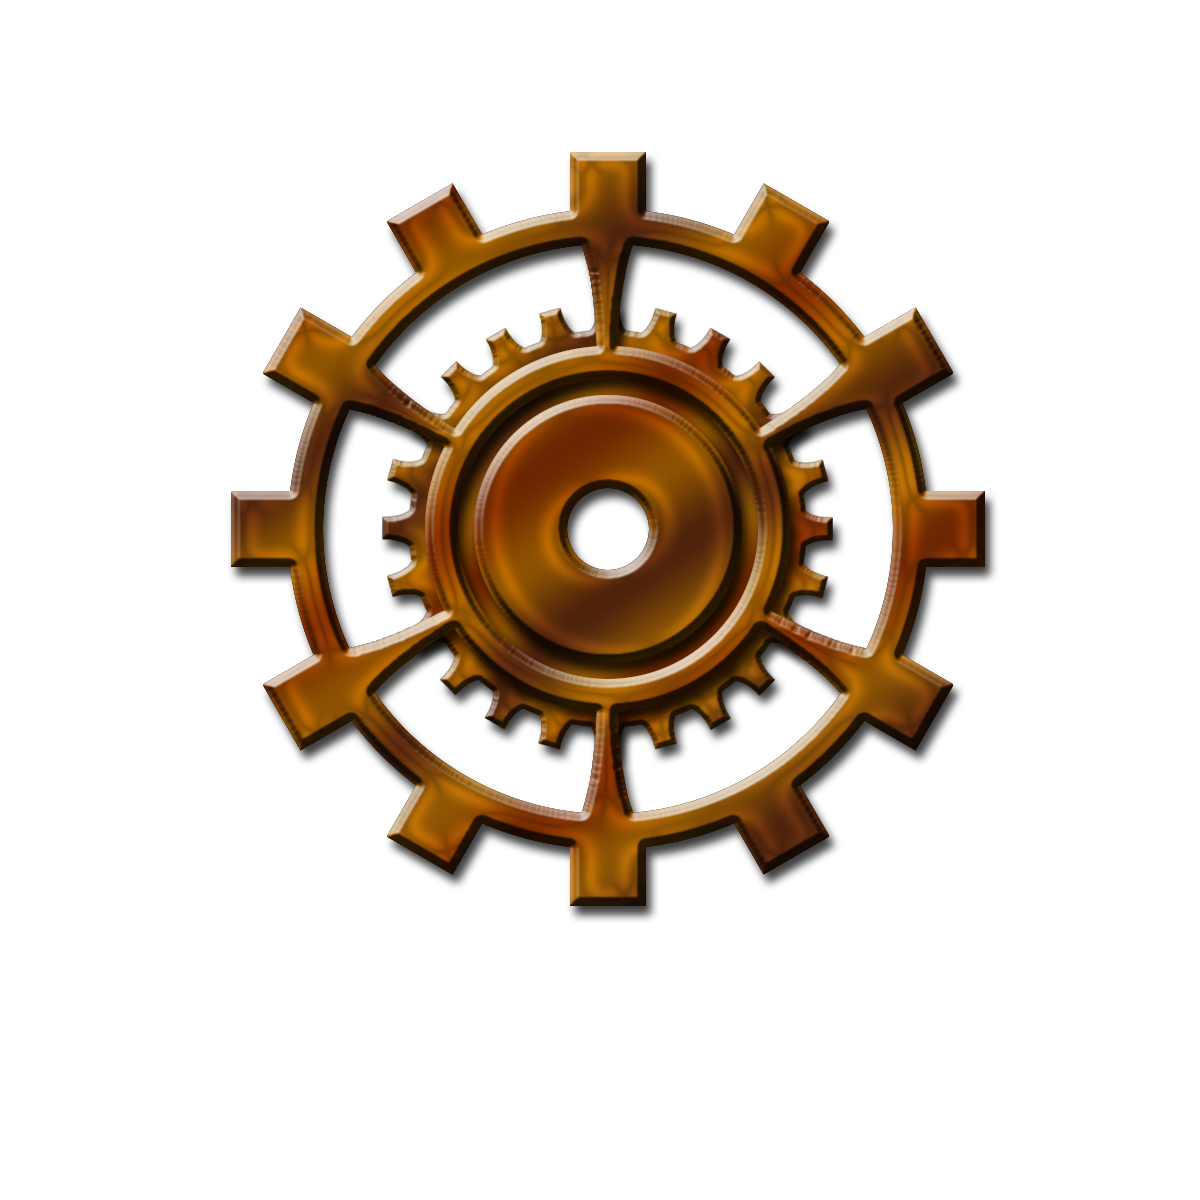 Steampunk Gear Image PNG Image